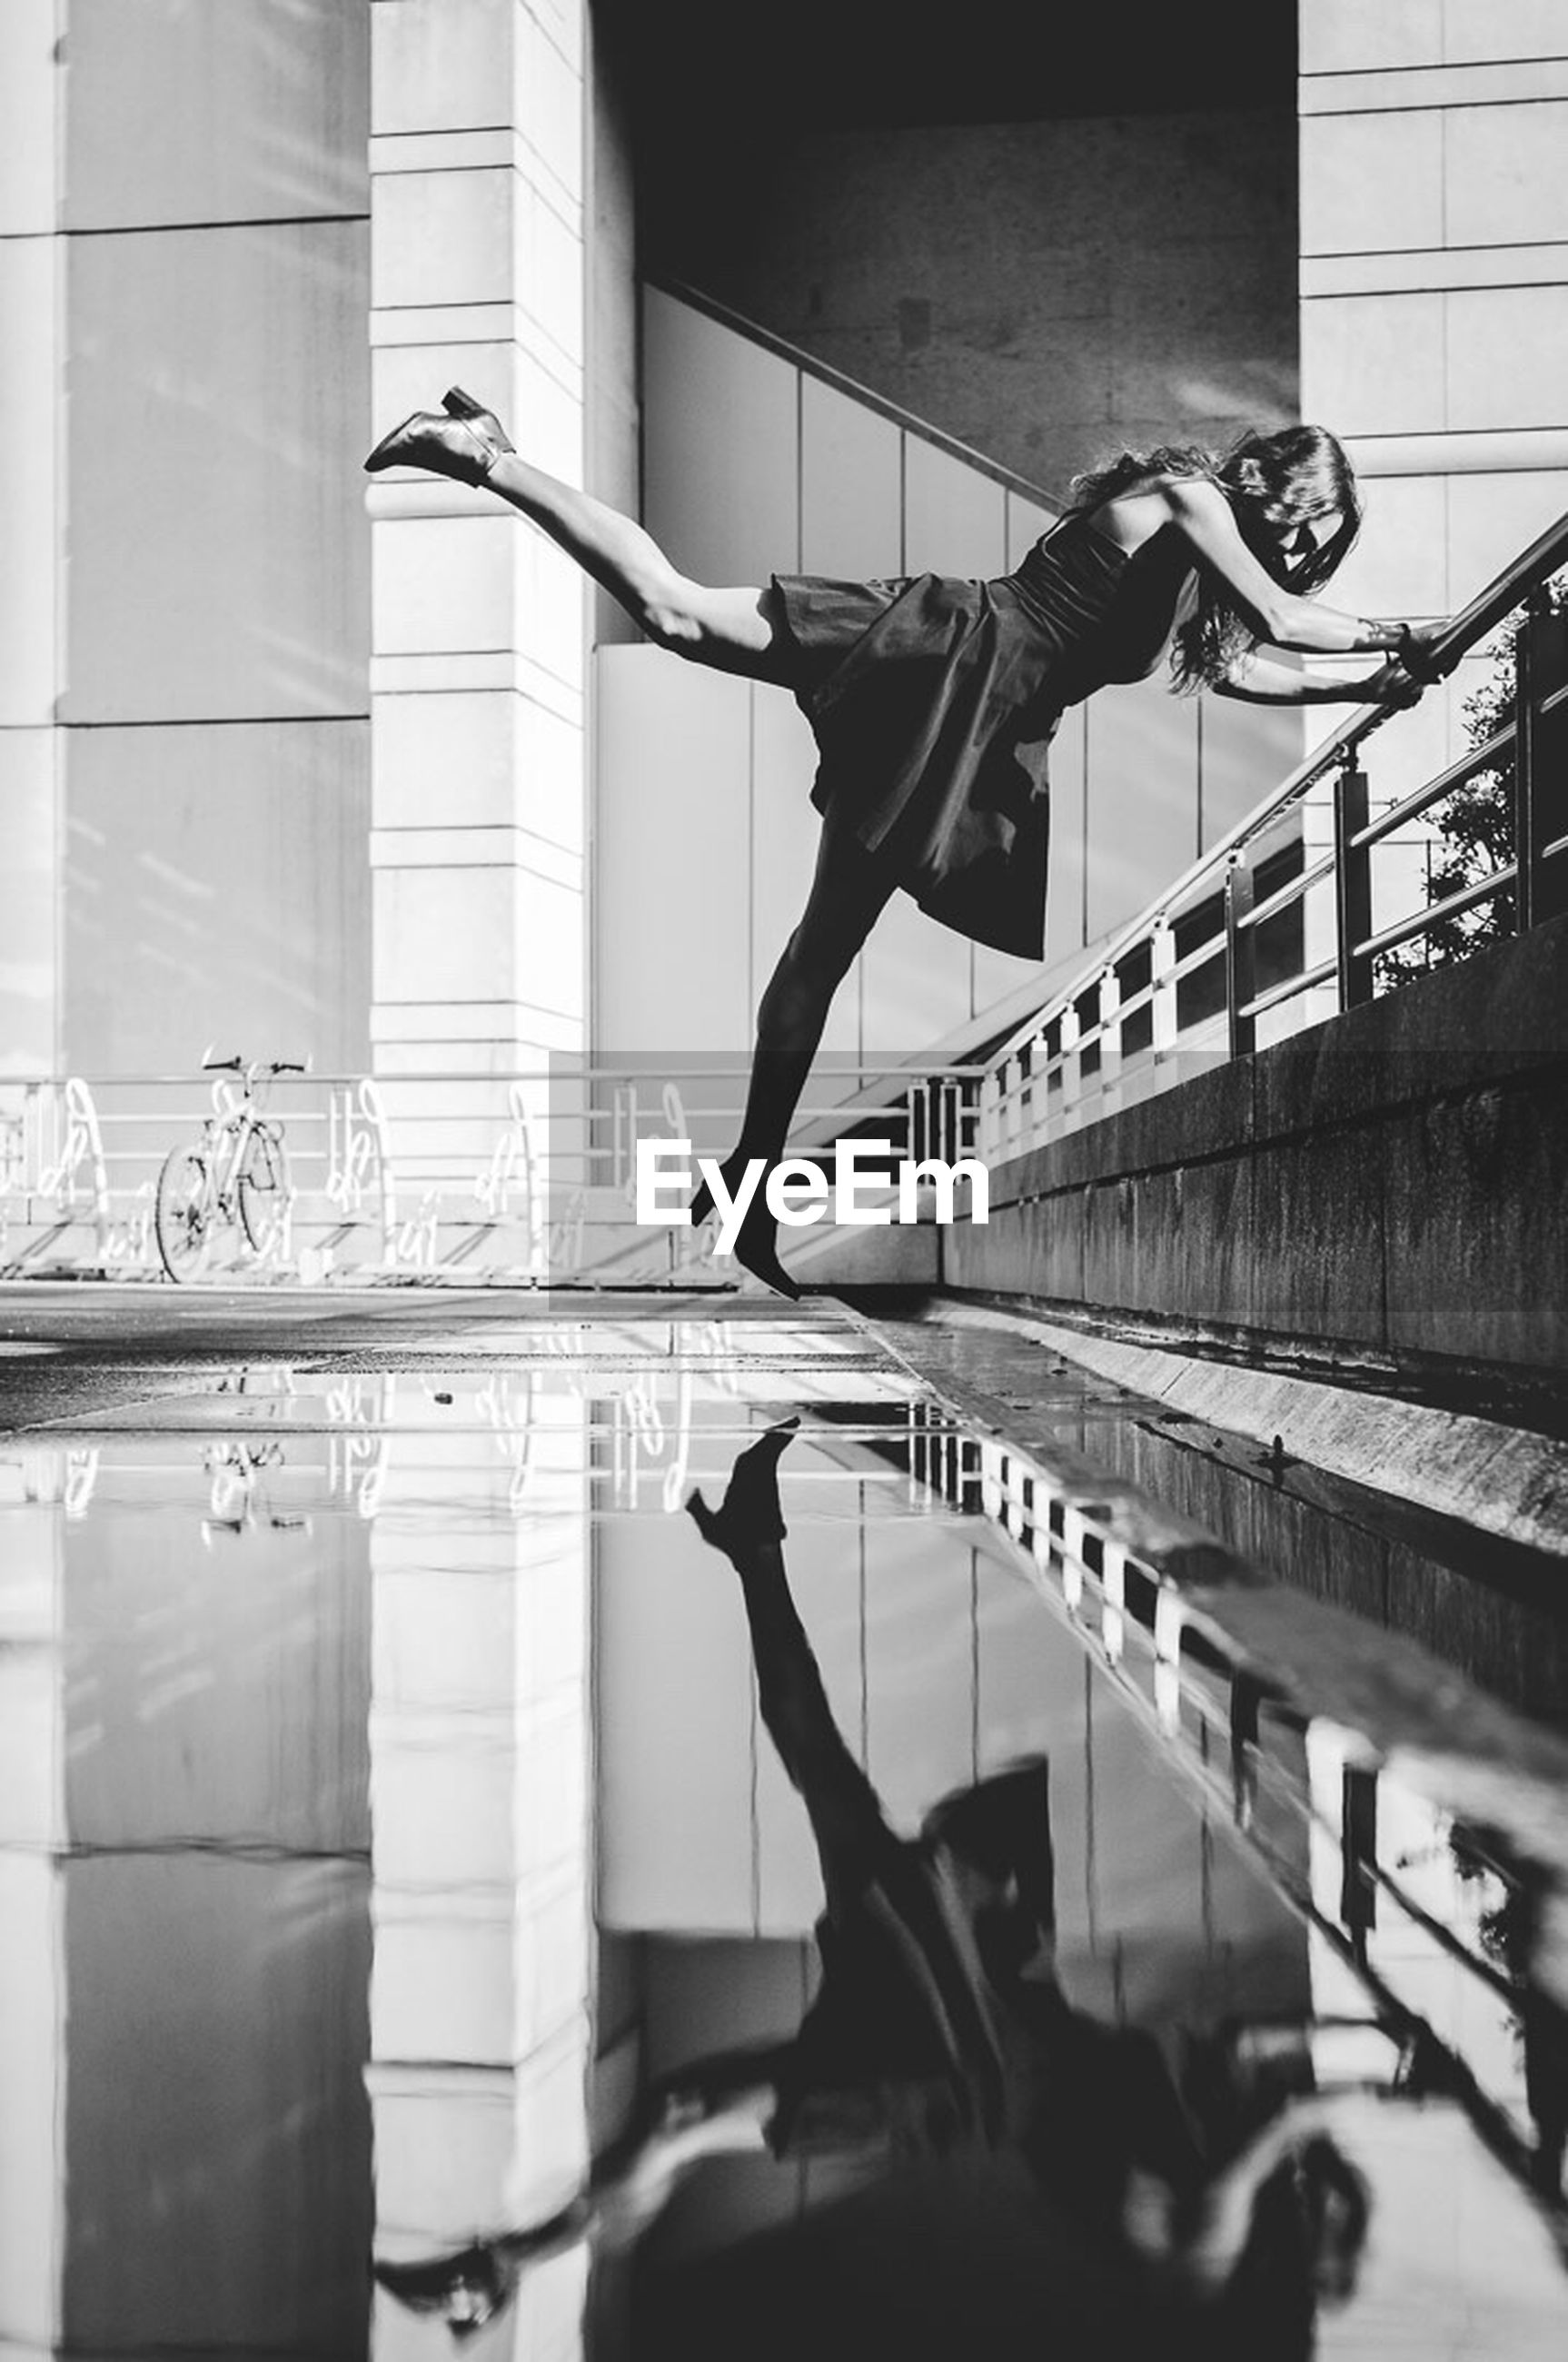 exercising, full length, real people, balance, indoors, strength, one person, lifestyles, healthy lifestyle, flexibility, skill, day, sports clothing, men, legs apart, architecture, gym, sport, young adult, athlete, people